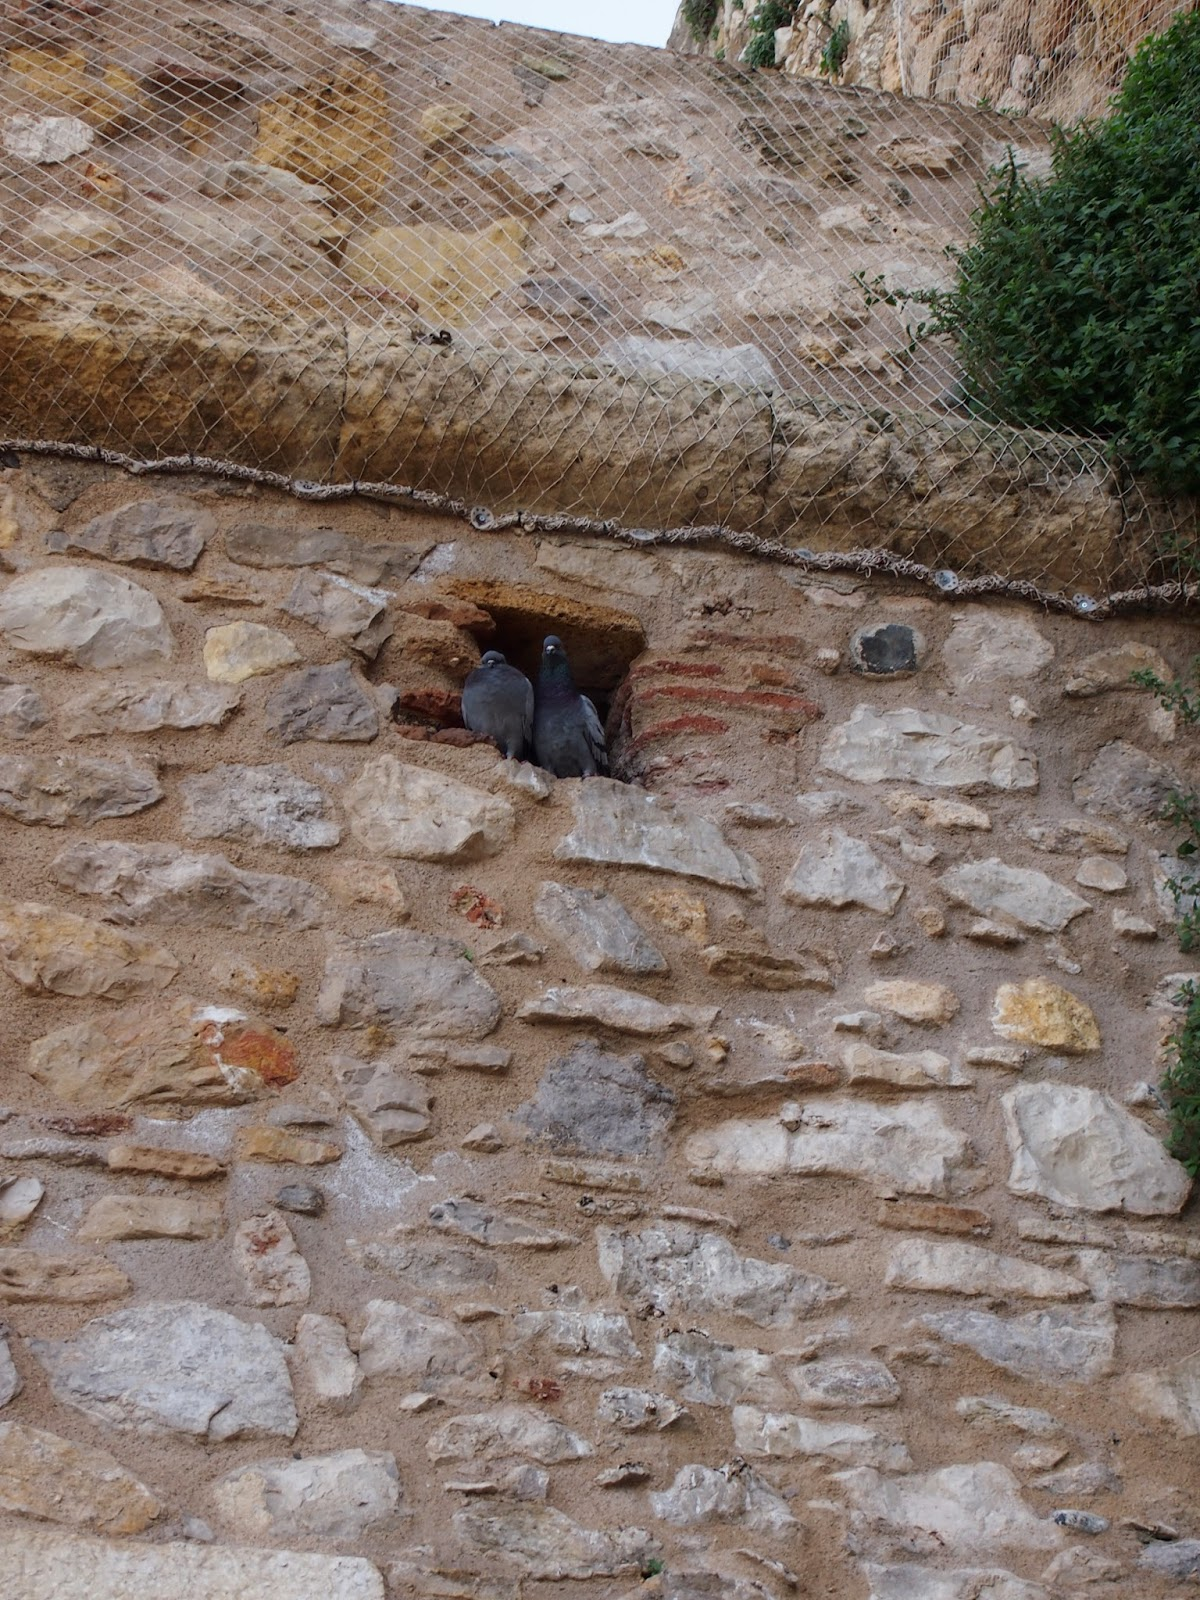 pigeons nesting in an old wall